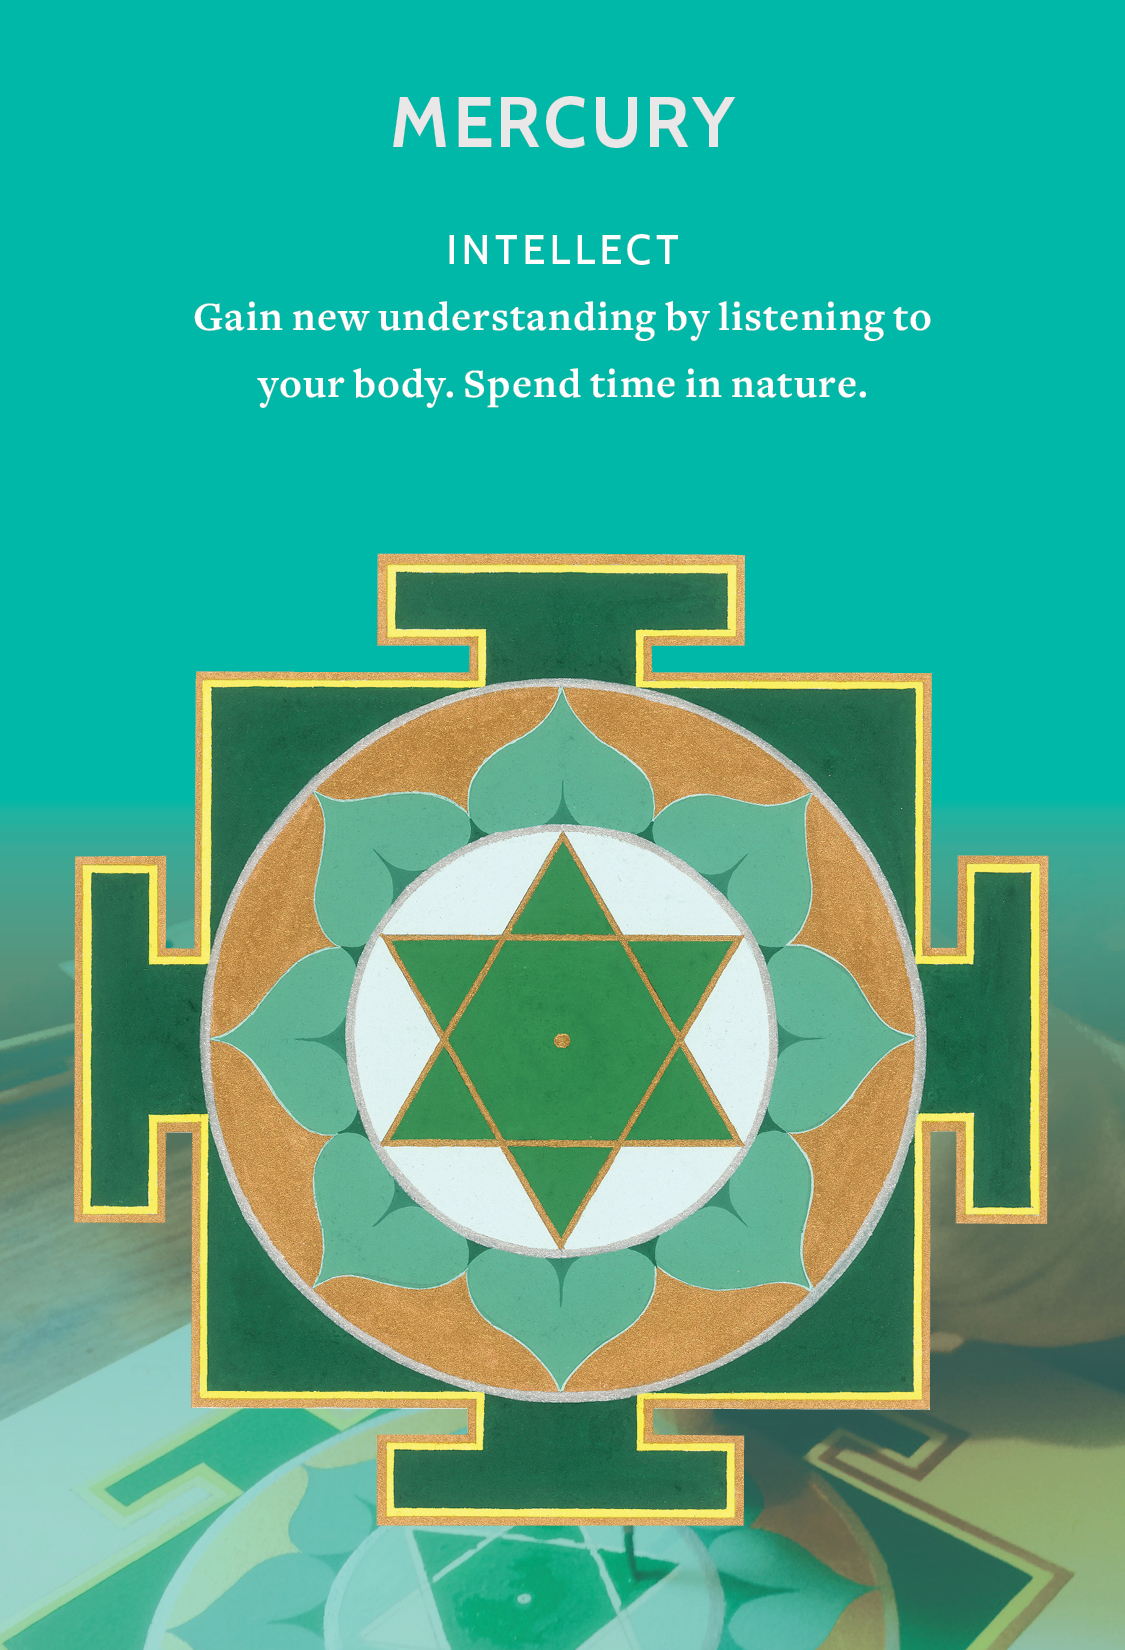 MERCURY: Intellect - If you are drawn to the cooling, soothing greens in the Mercury Yantra your nervous system may need some rejuvenation. Play. A childlike curiosity, change, travel and some long deep breaths can help. For mental clarity turn to your body and tune into the sensations. Answers come in the form of pulsation, listening to the heart mind, witnessing meditations and communication.